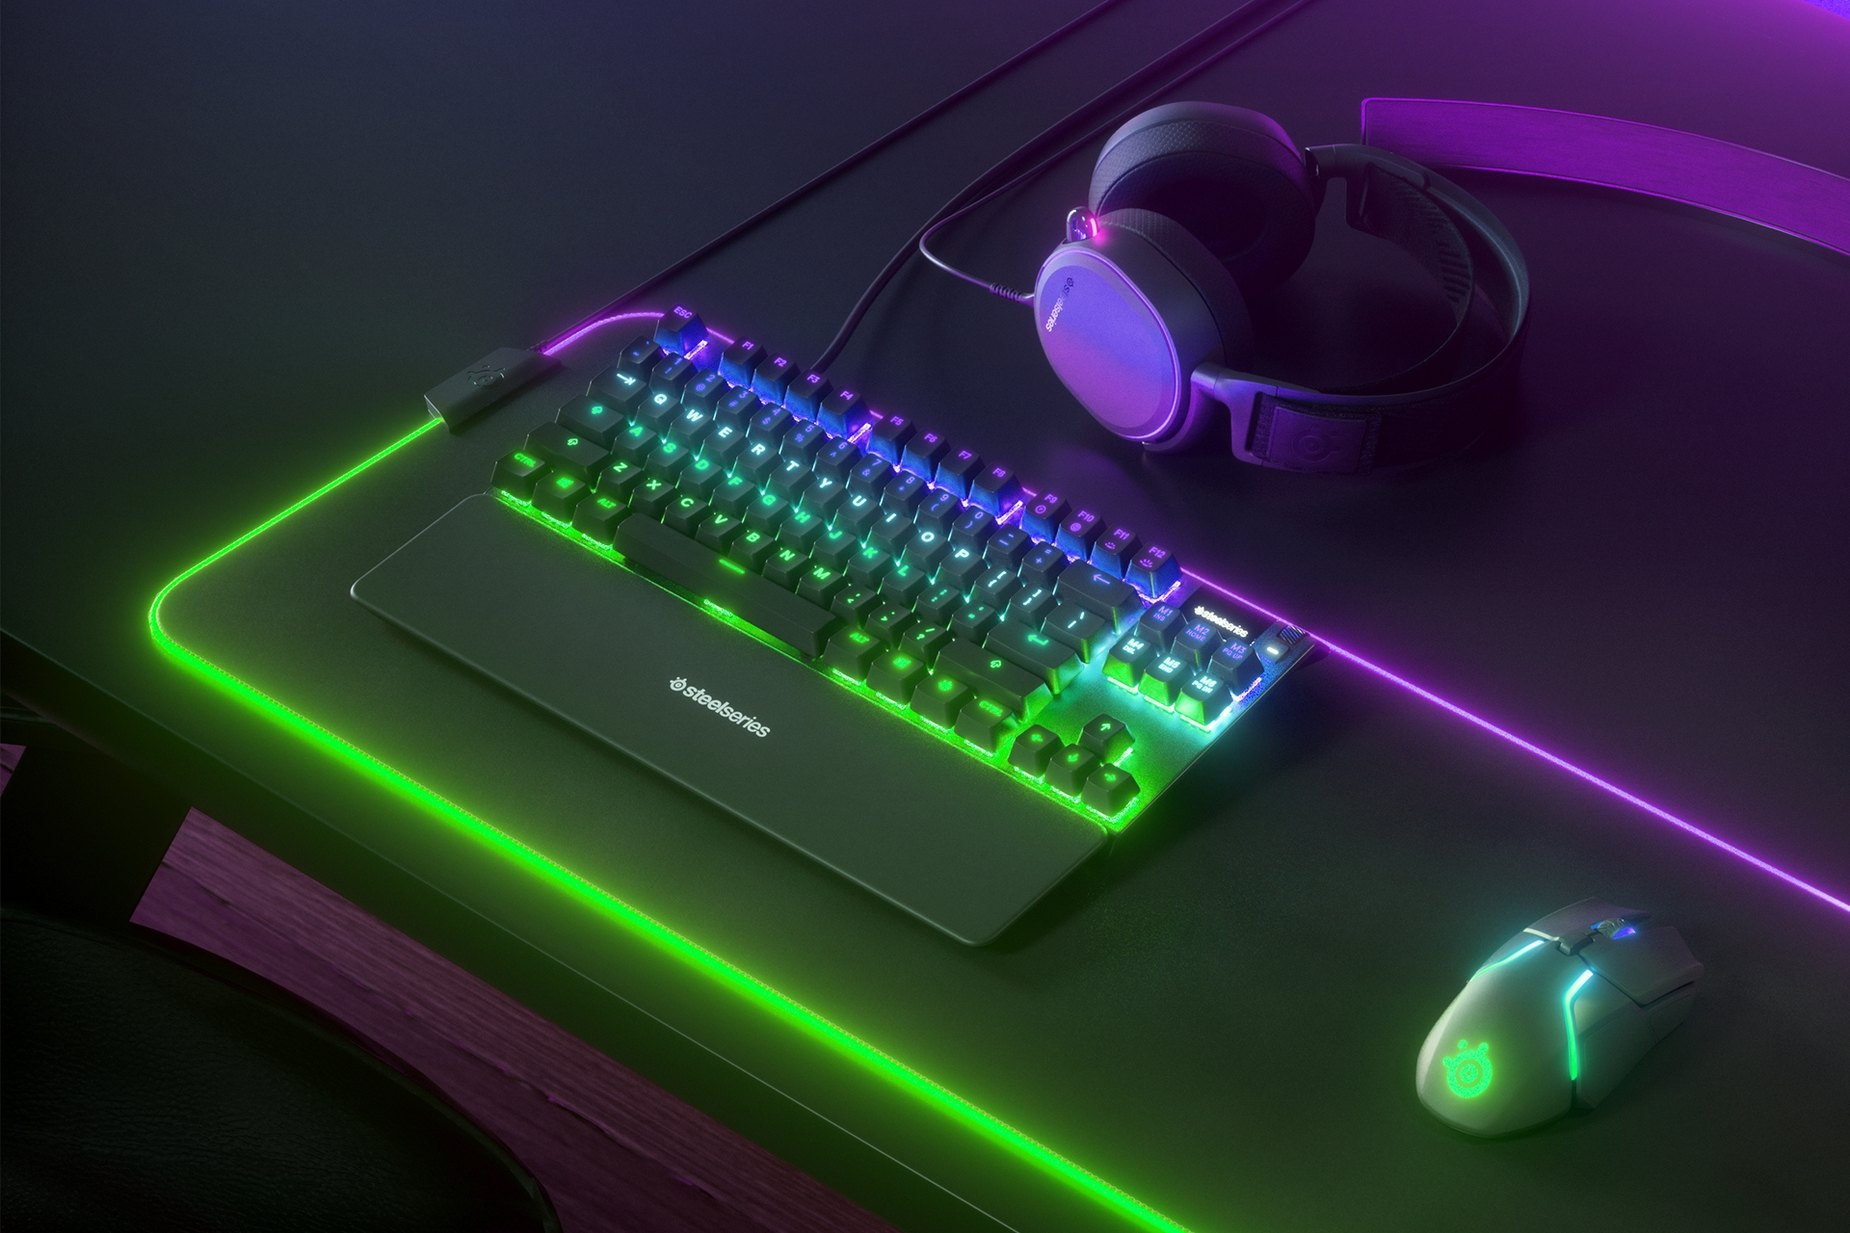 Japanese - Apex Pro TKL gaming keyboard on a desk with a gaming mouse, both on top of a large mousepad and a SteelSeries gaming headset next to them